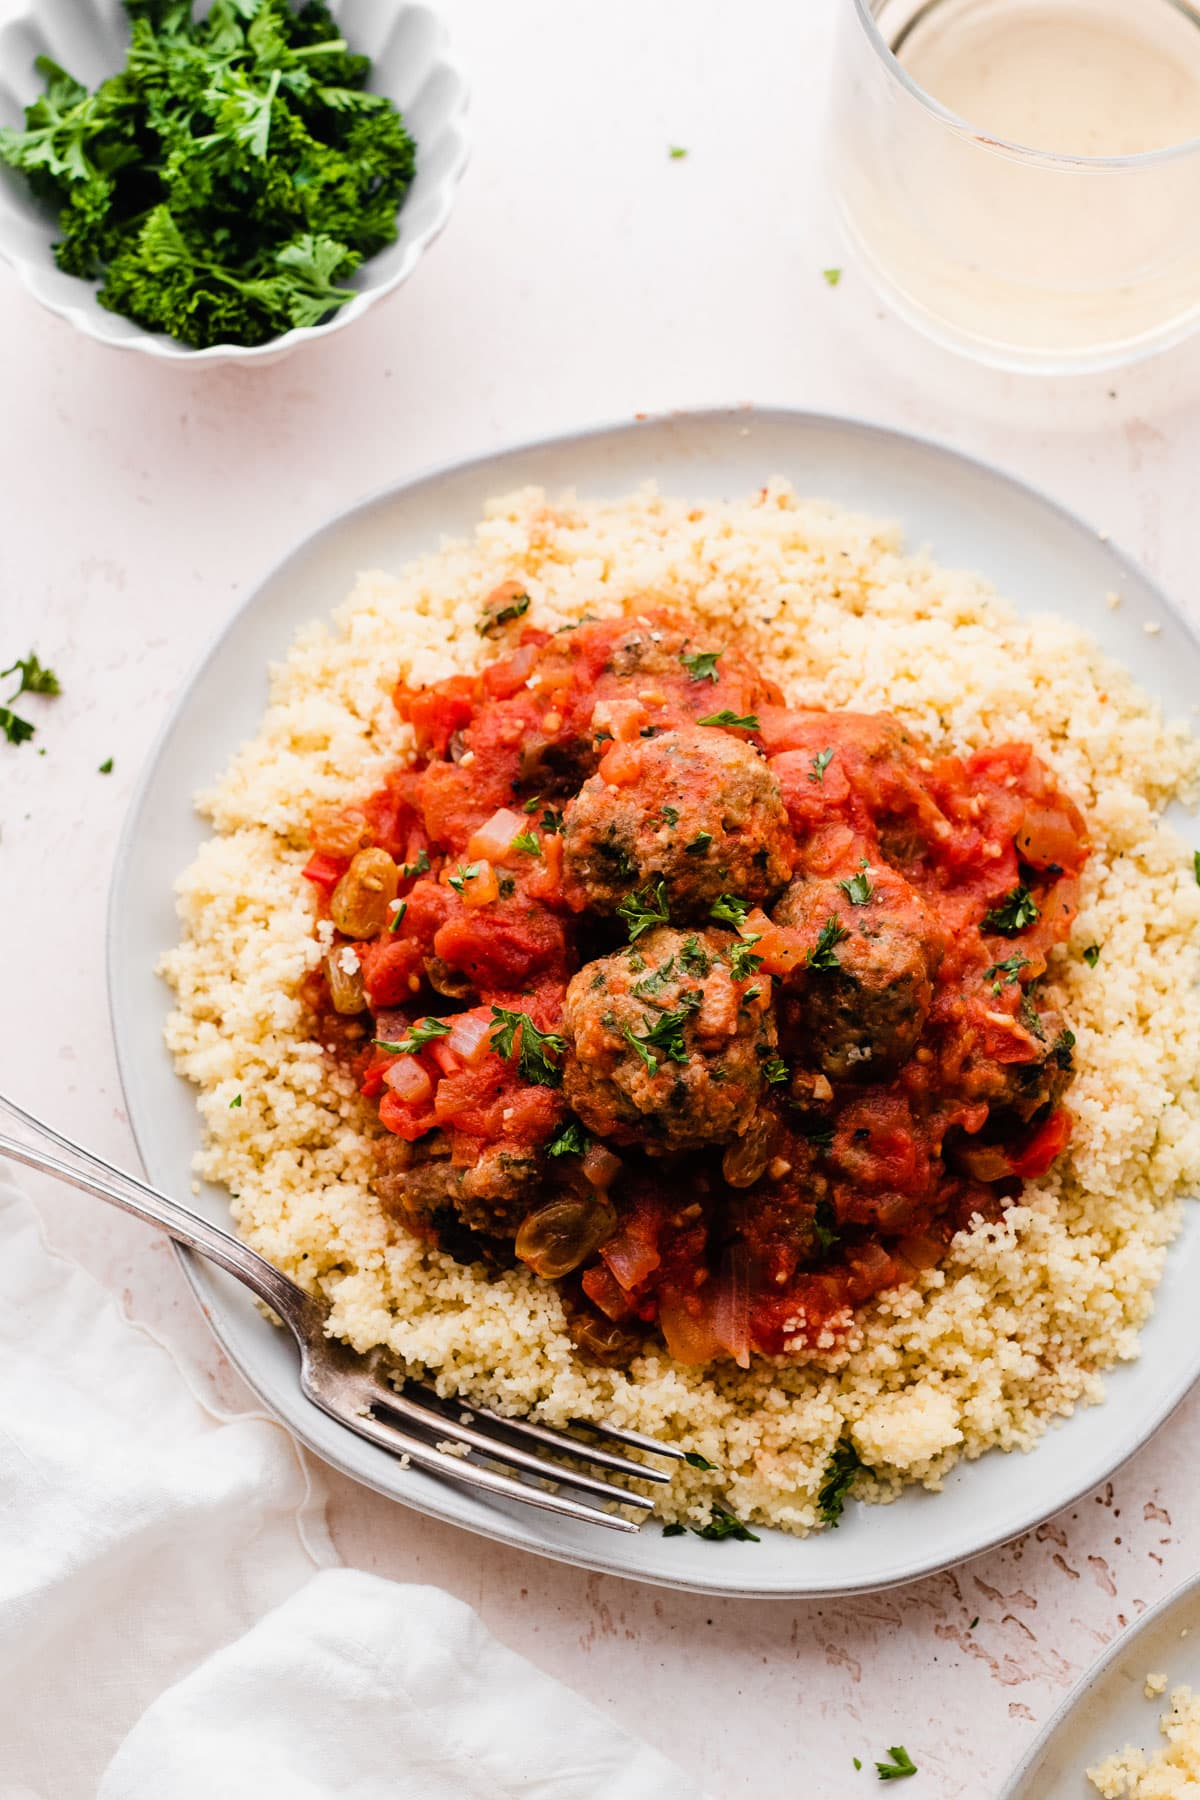 Moroccan Turkey Meatballs—juicy turkey meatballs with the warm spices and flavors of Moraoco